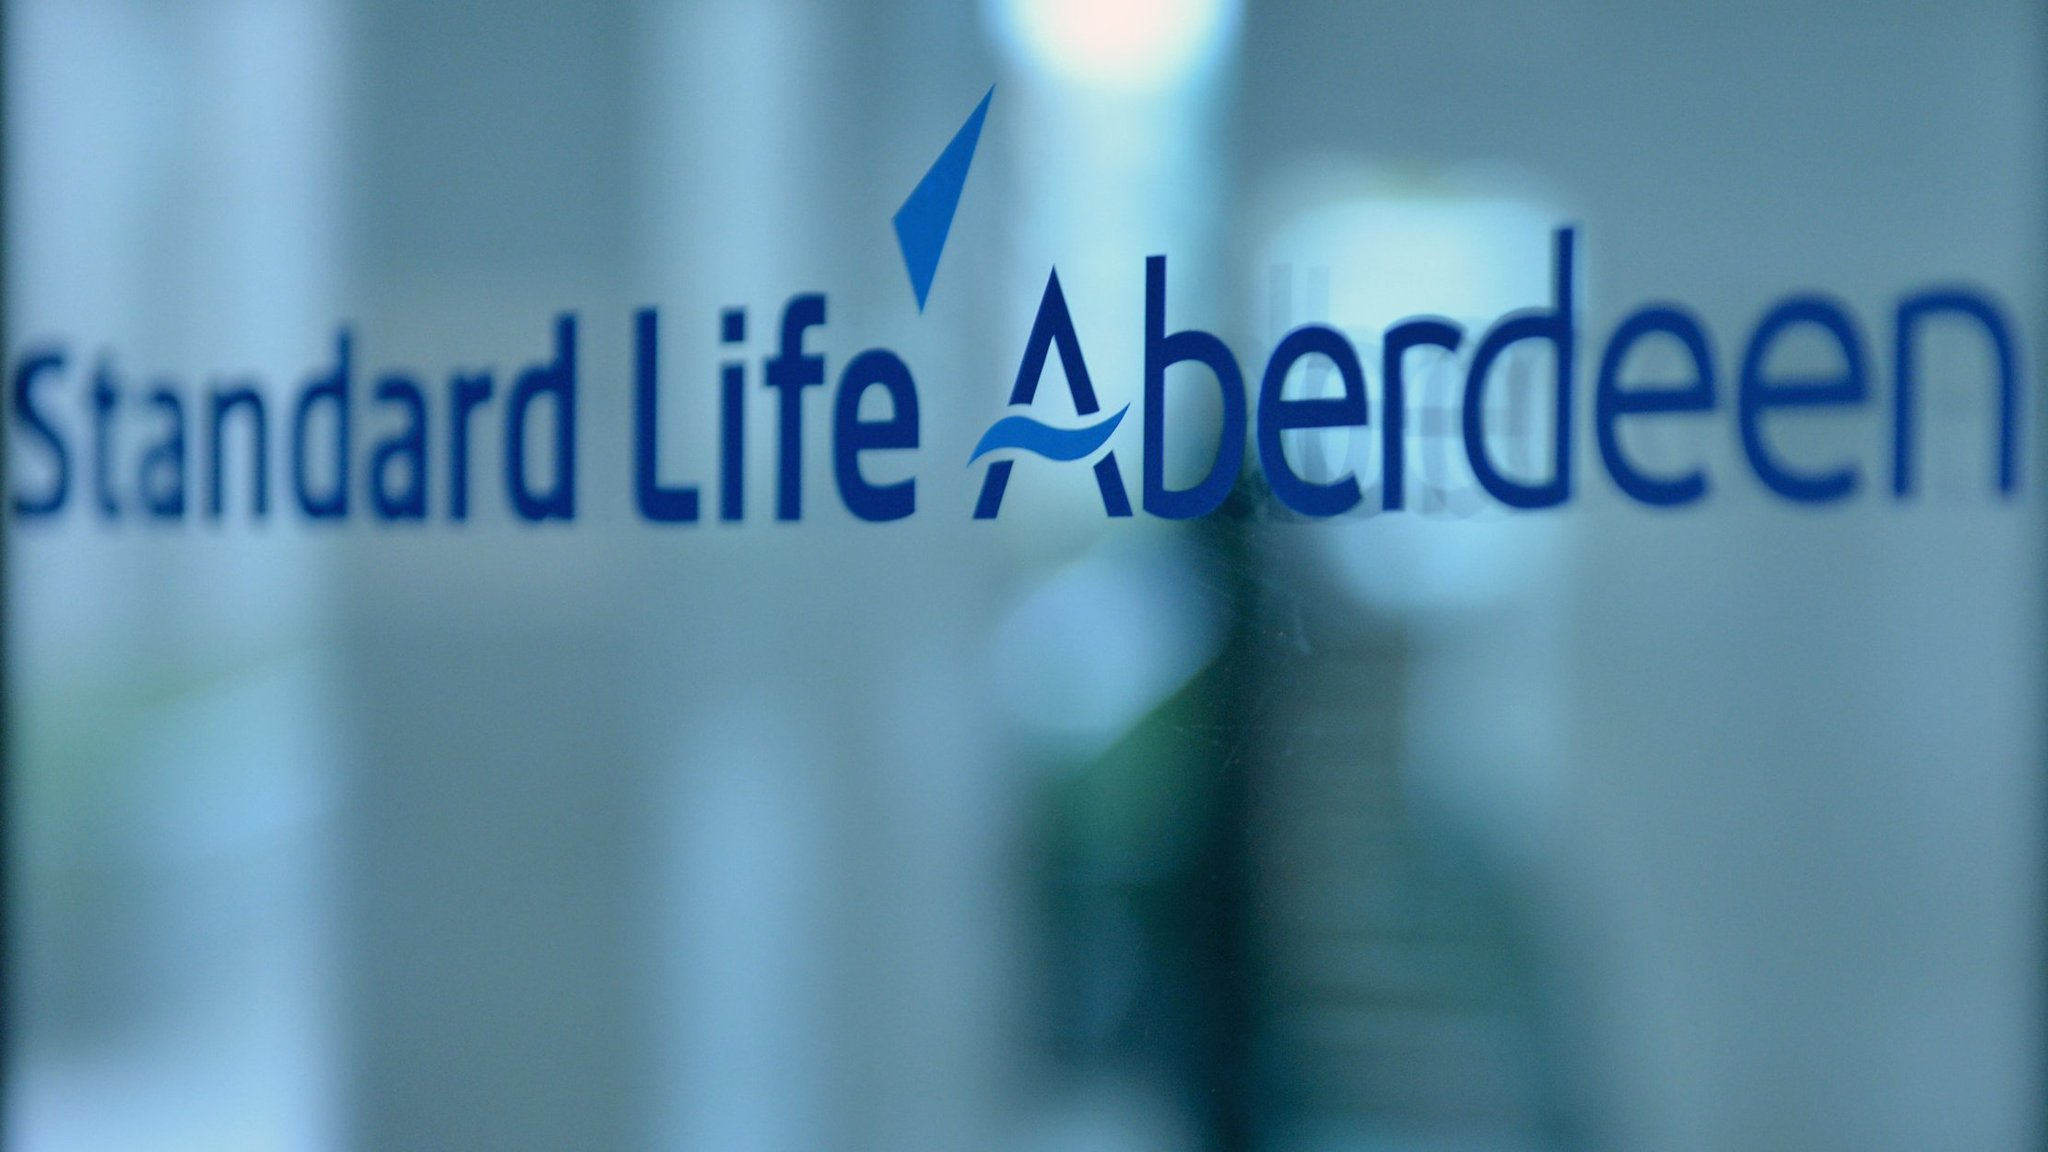 Standard Life Aberdeen fights Lloyds to keep its biggest contract